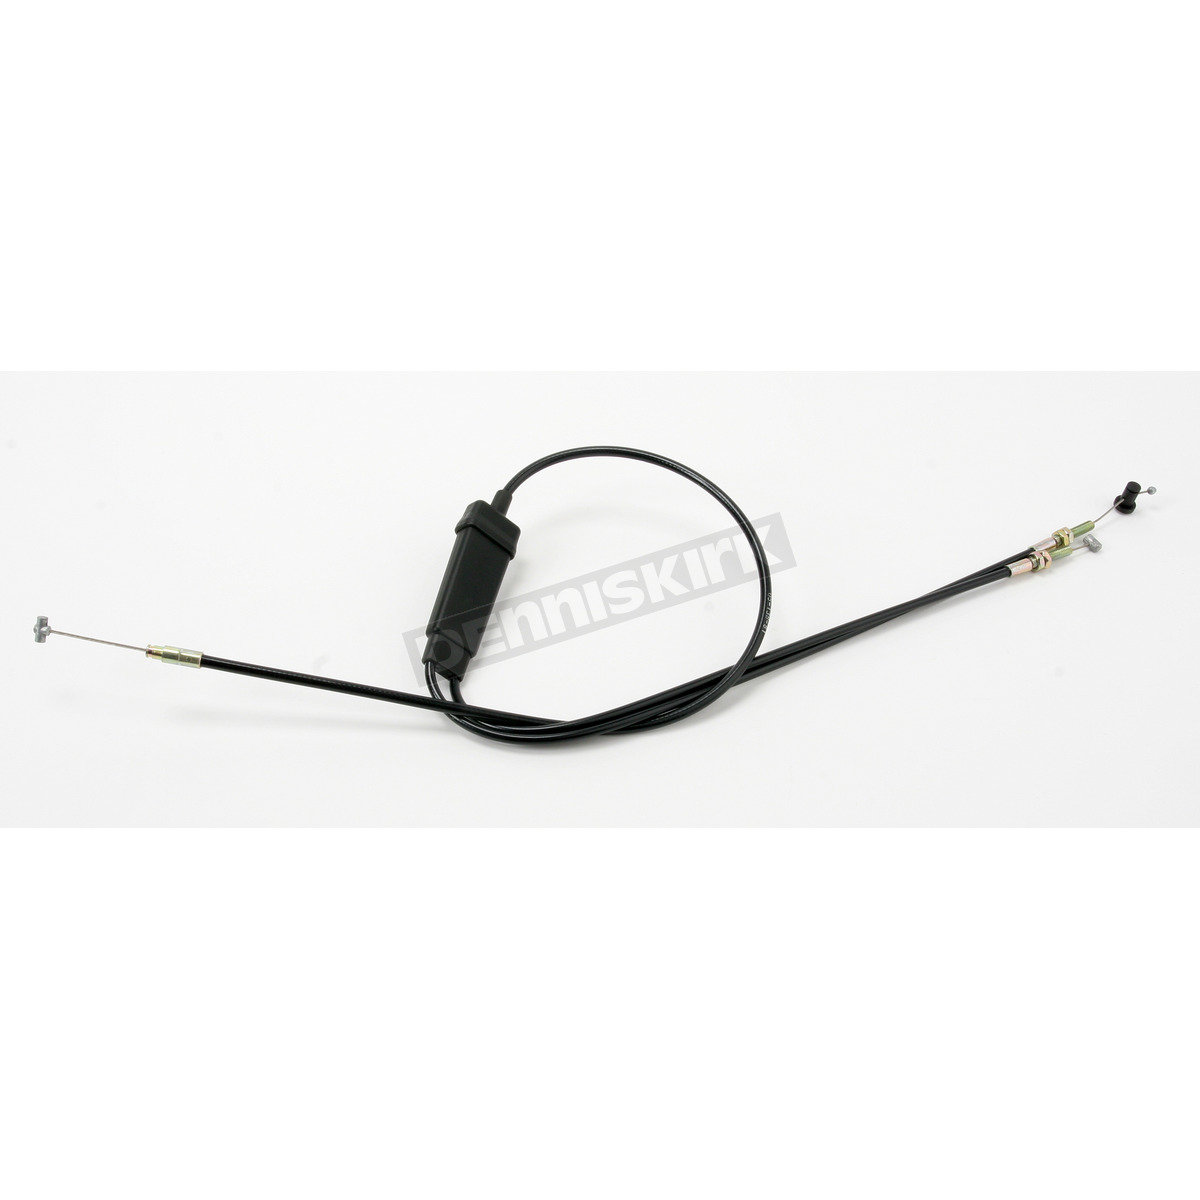 Parts Unlimited 44 1 2 In Custom Fit Throttle Cable